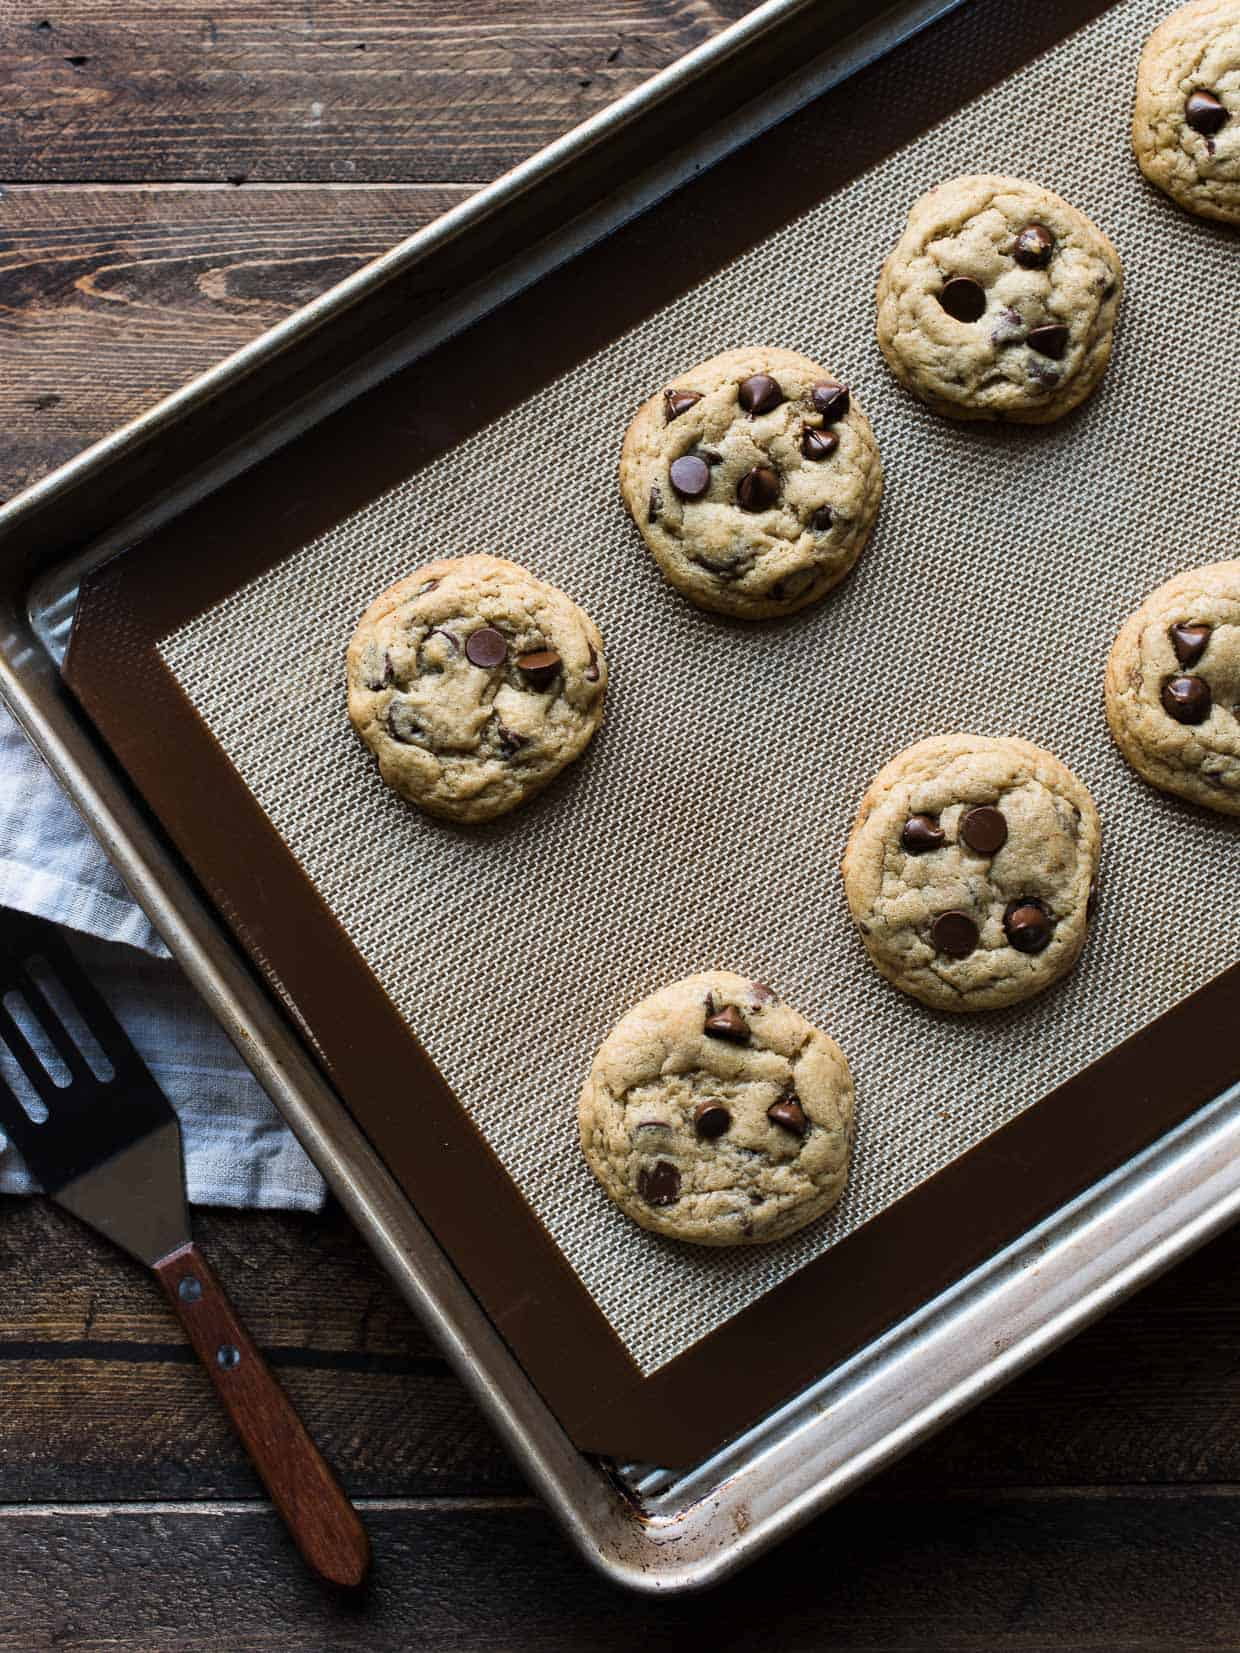 A combination of cream cheese, butter and one more special ingredient makes for a simple dough and perfectly tender cookies. You'll love this recipe for Cream Cheese Chocolate Chip Cookies. #cookie #creamcheese #chocolatechip #chocolate #recipe #cookies